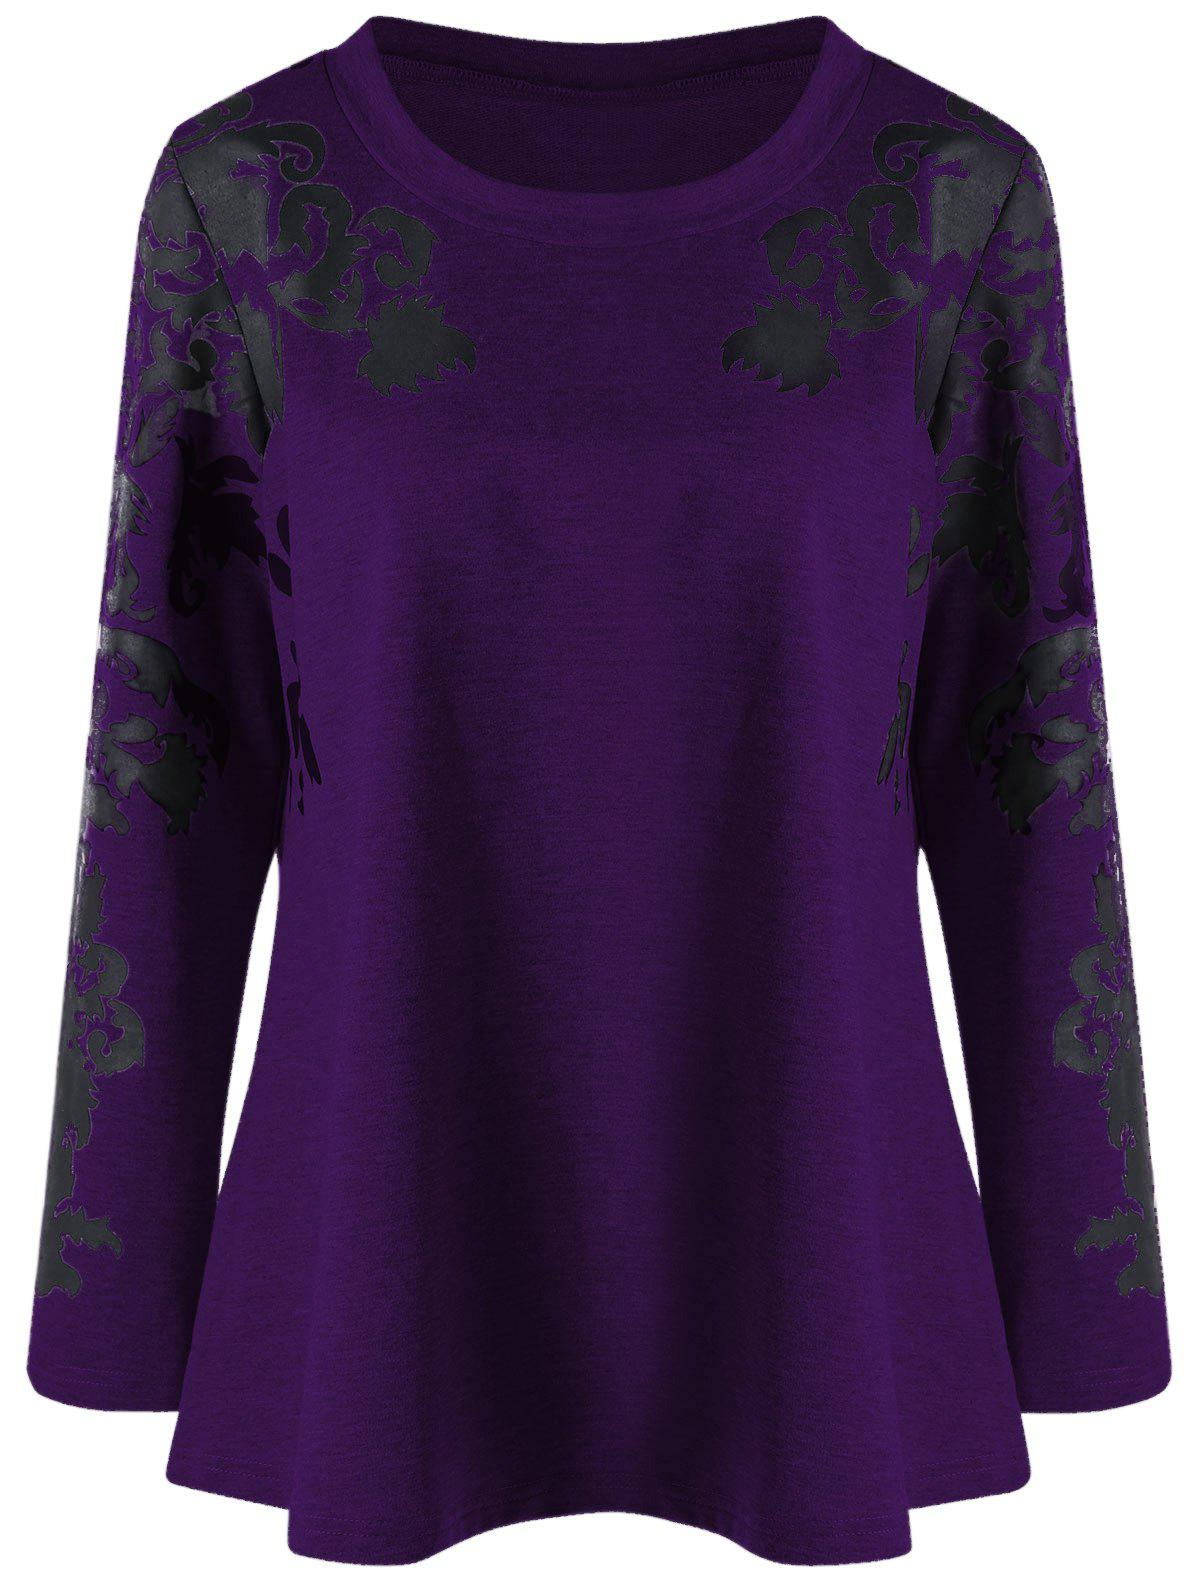 Raglan Sleeve Plus Size Print TopWOMEN<br><br>Size: 2XL; Color: DEEP PURPLE; Material: Cotton Blends,Polyester,Spandex; Shirt Length: Regular; Sleeve Length: Full; Collar: Round Neck; Style: Casual; Season: Fall,Spring; Pattern Type: Print; Weight: 0.3910kg; Package Contents: 1 x Top;